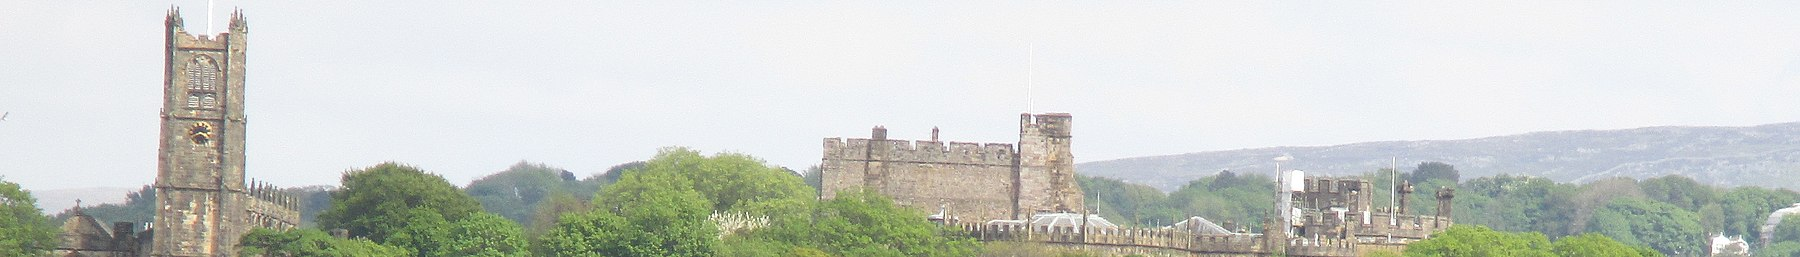 Lancaster banner Priory and Castle.jpg